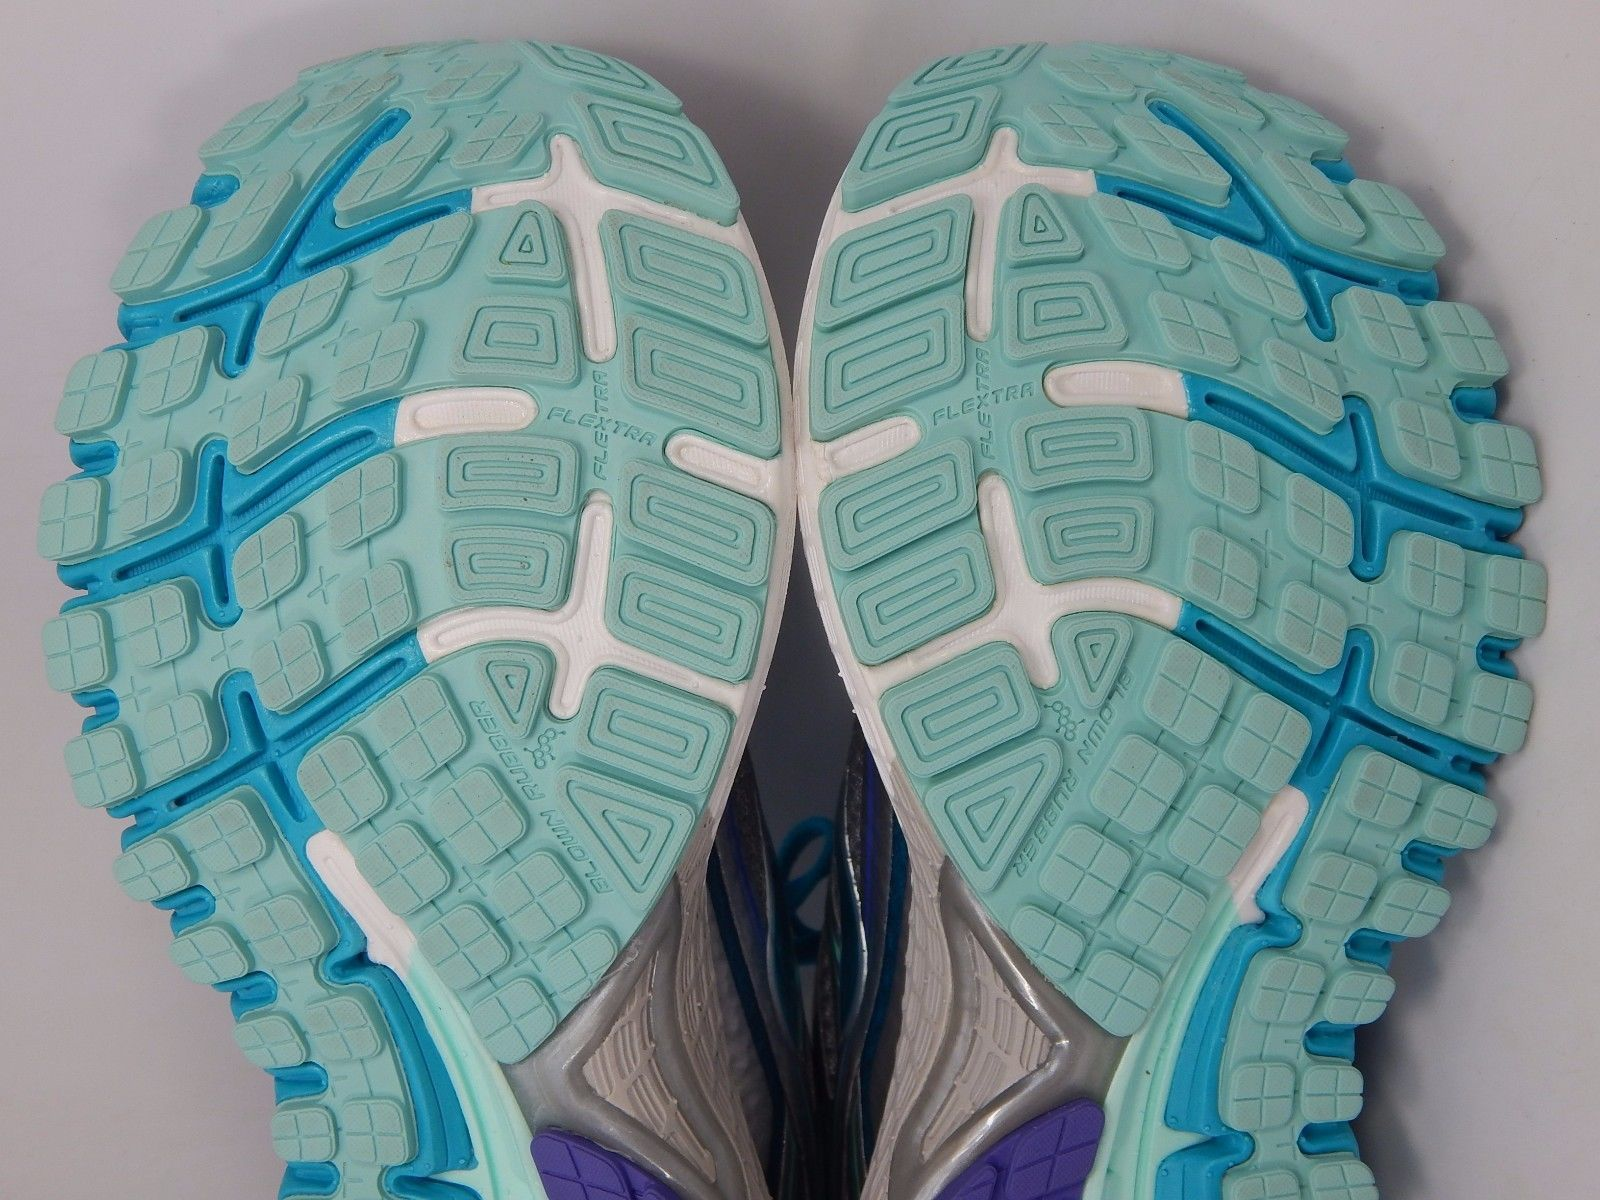 Brooks GTS 16 Women's Running Shoes Size US 7.5 2A NARROW EU 38.5 1202032A170